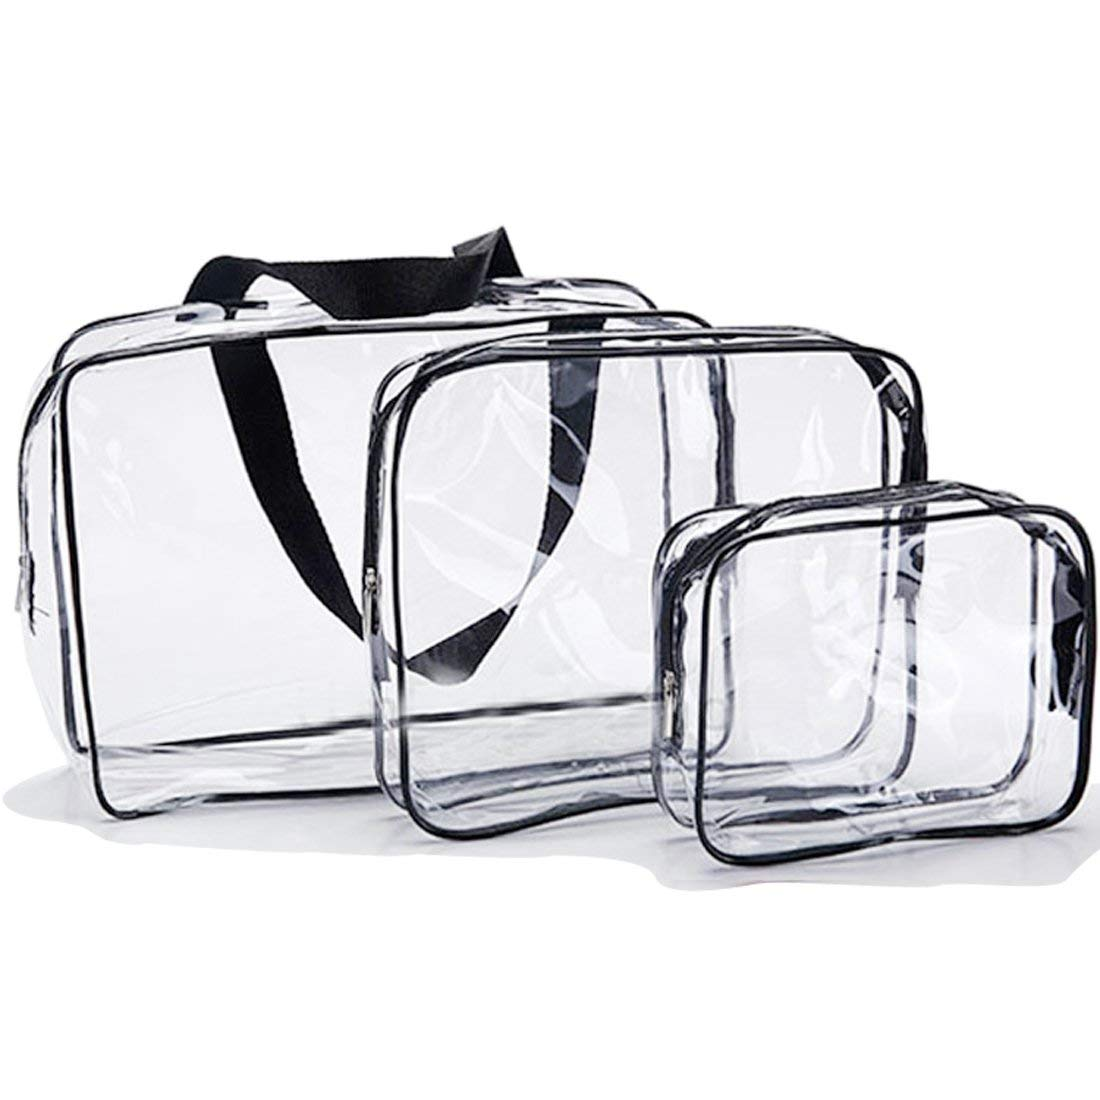 "LXC Clear Tote Bag,every pack have three bags(22""X 30"" X 10"") - (20"" X 24""X 5"") - (14""X 18"" X 4""). This transparent bag is suitable for work, schools, sports meetings and concerts."